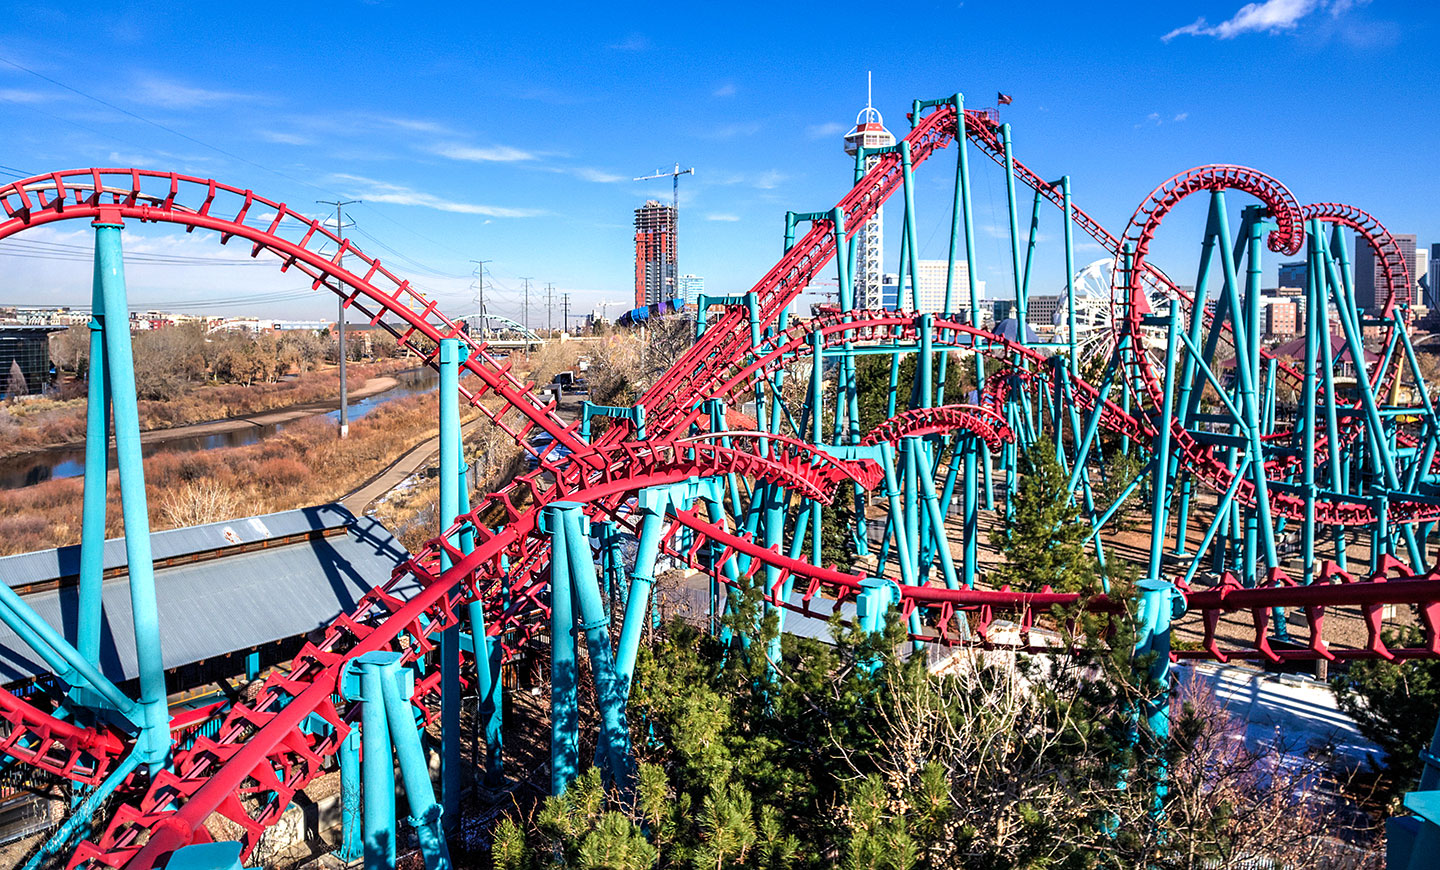 Things to Do in Denver - Elitch Gardens Amusement Park